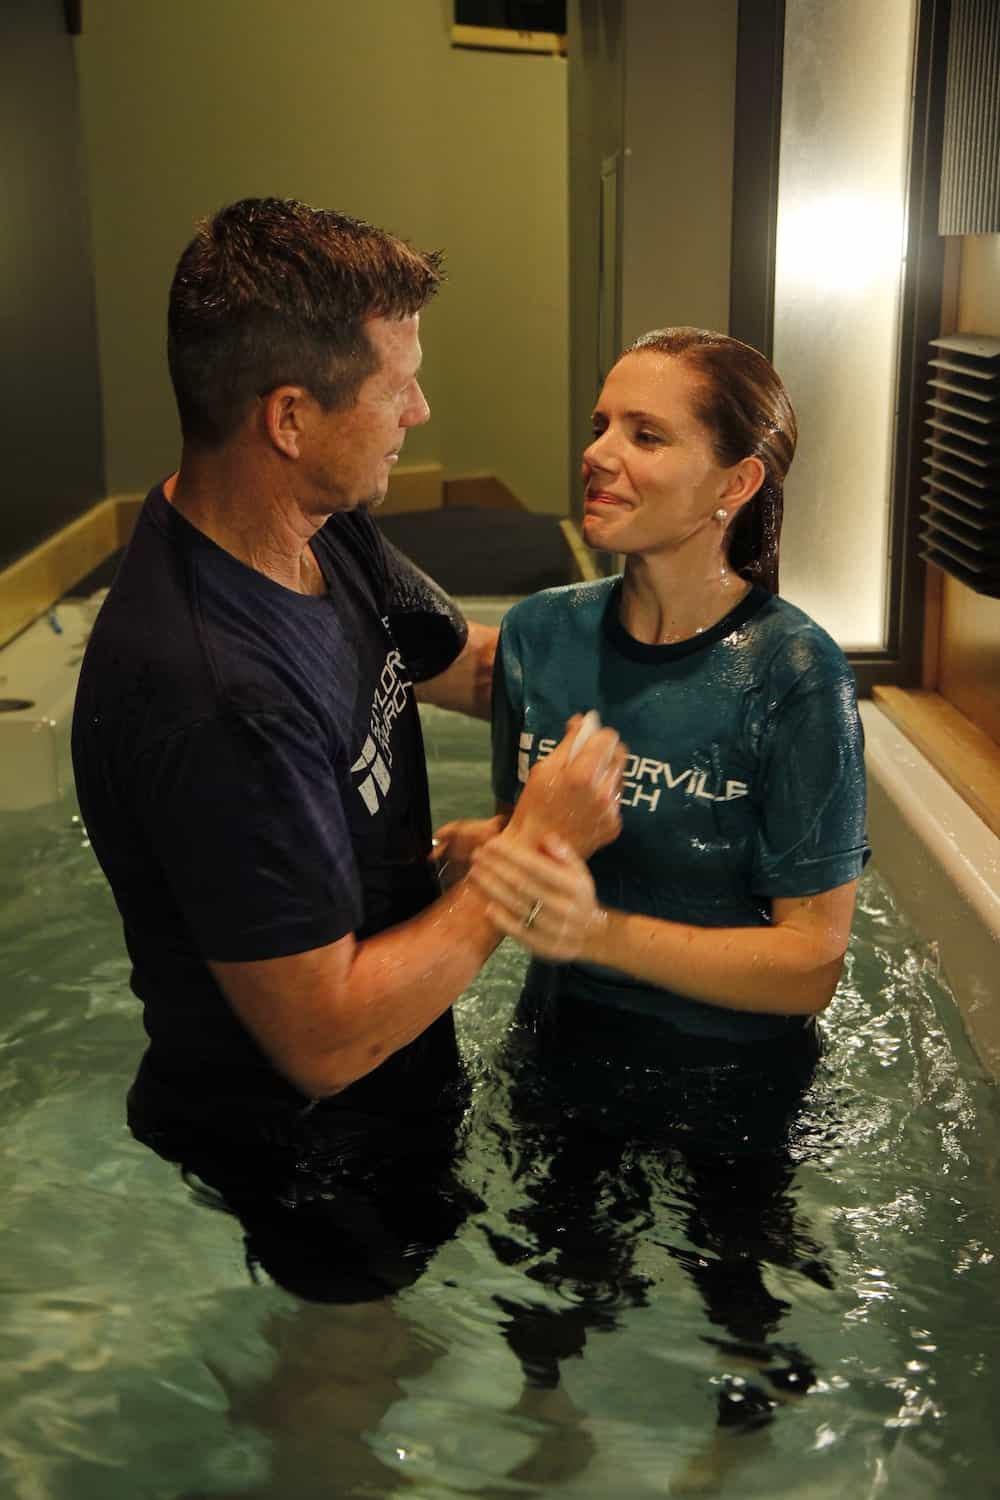 Gemma Sandberg's baptism. Gemma is Founder of The Well, a gospel-centered website housing video life stories of people transformed through receiving Jesus Christ into their life